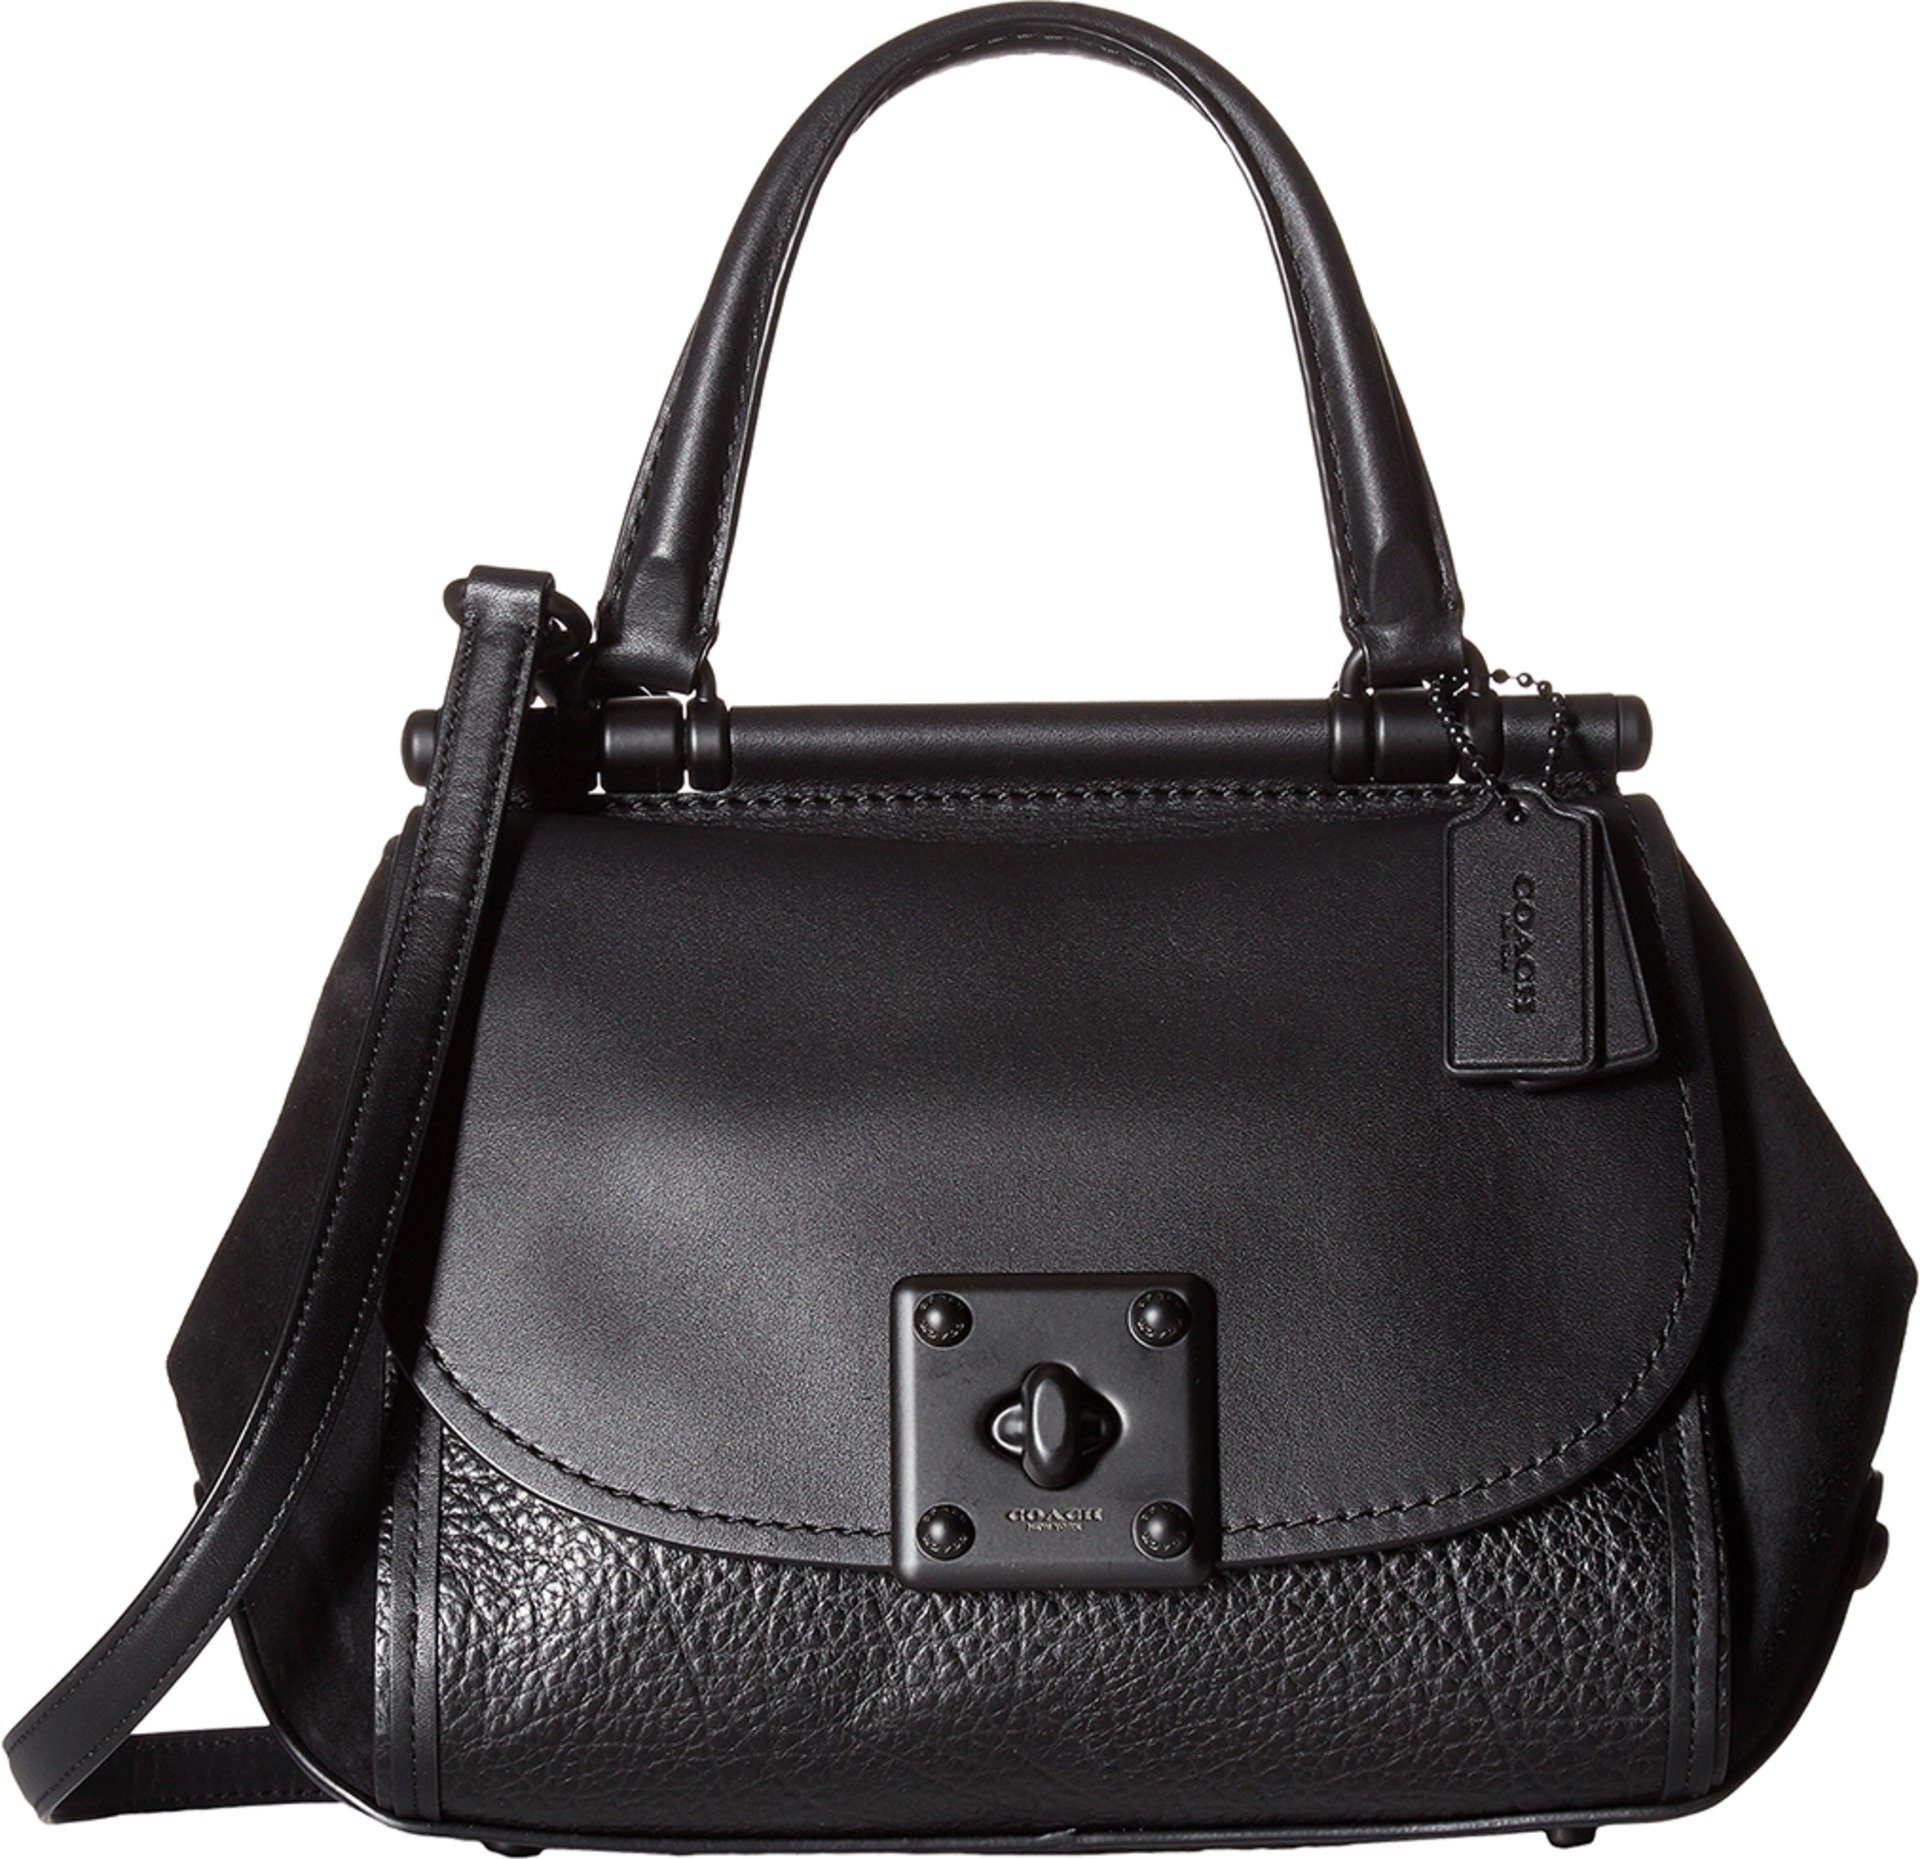 COACH Women's Mixed Leather Drifter Top-Handle MW/Black Satchel